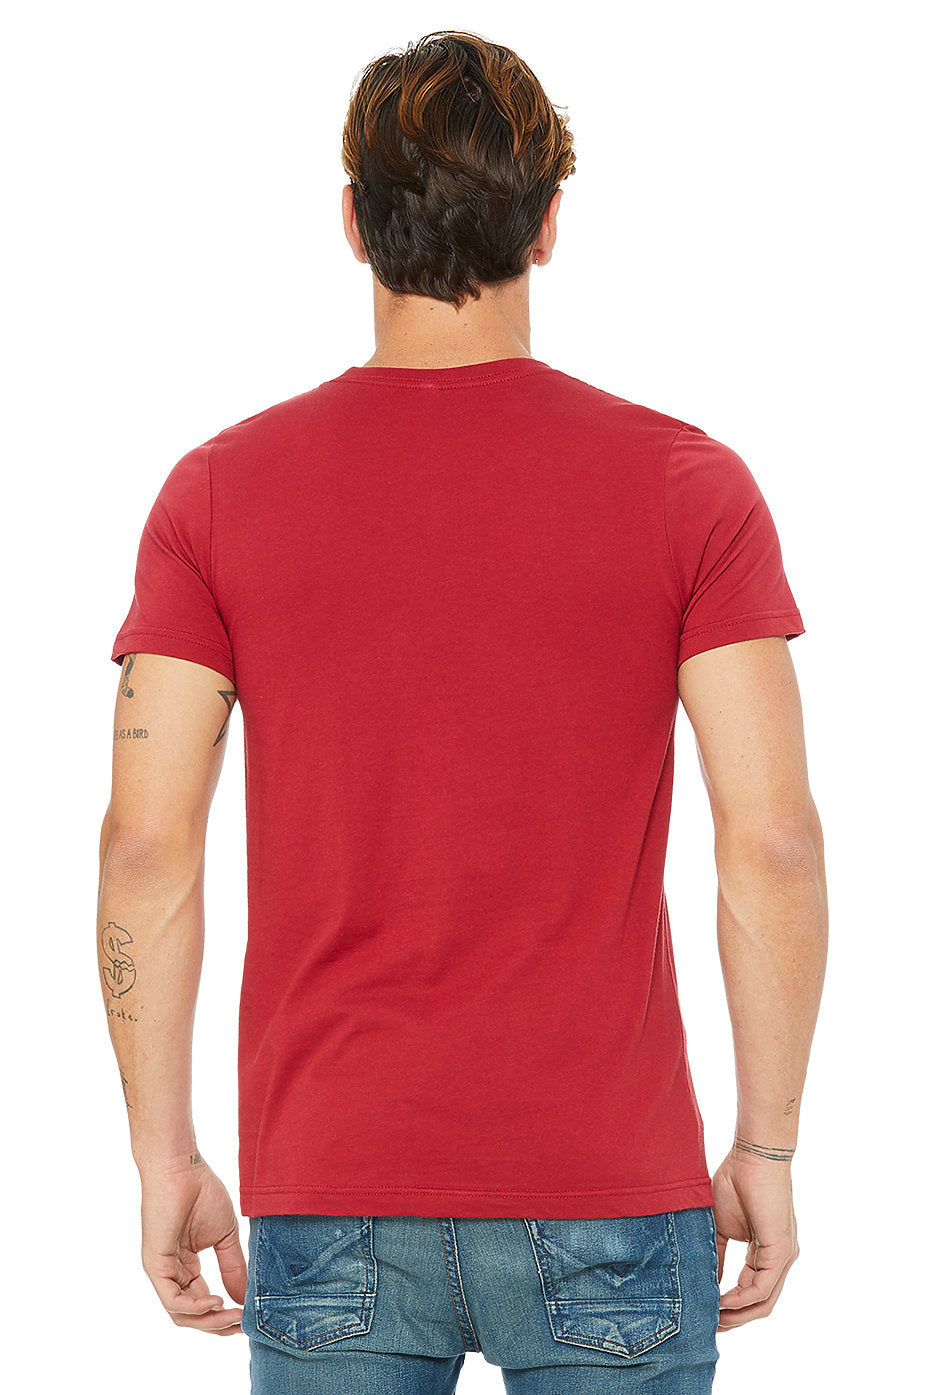 B&L Blank Canvas Men's Tee